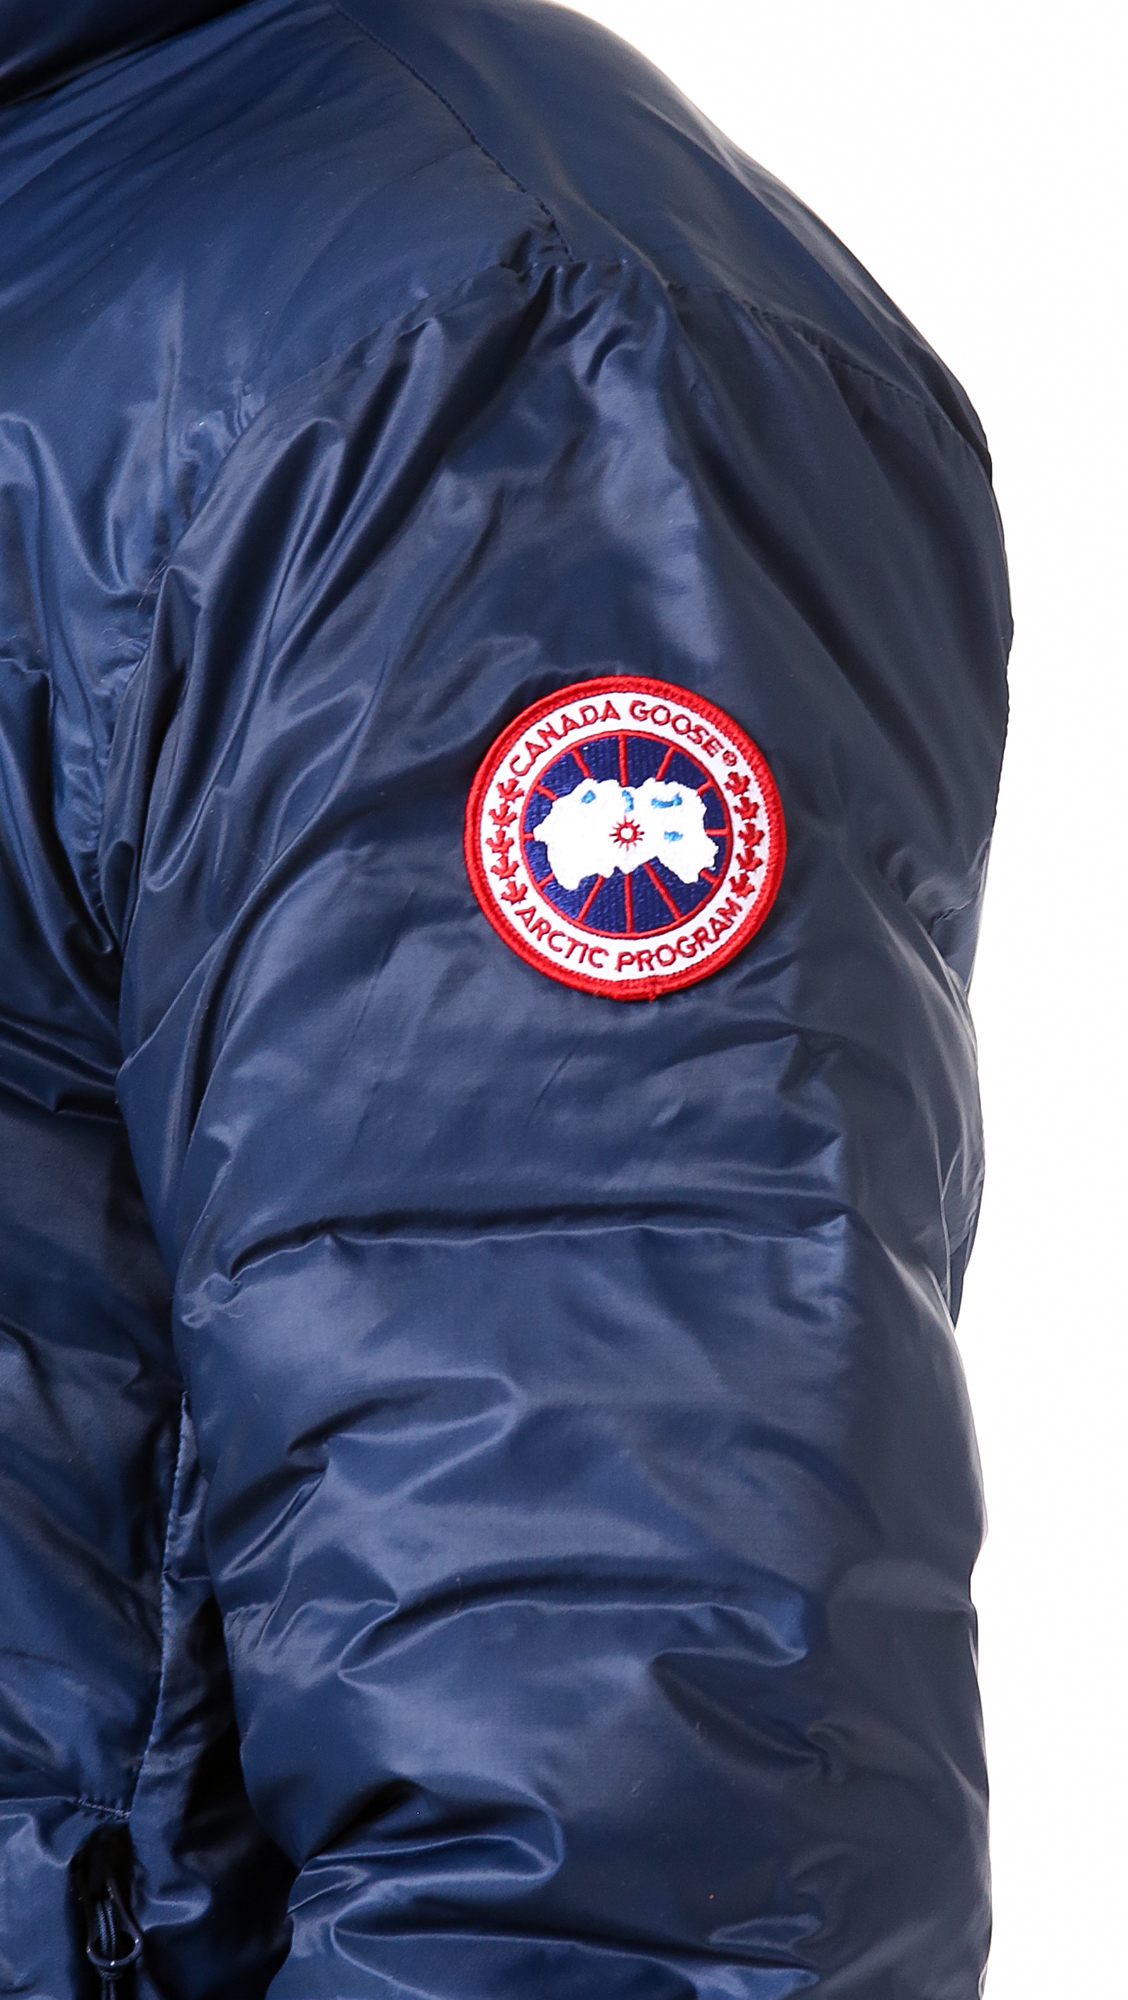 c5f7adf8c3c7 ... australia lyst canada goose lodge jacket in white for men 53db4 f1a1a